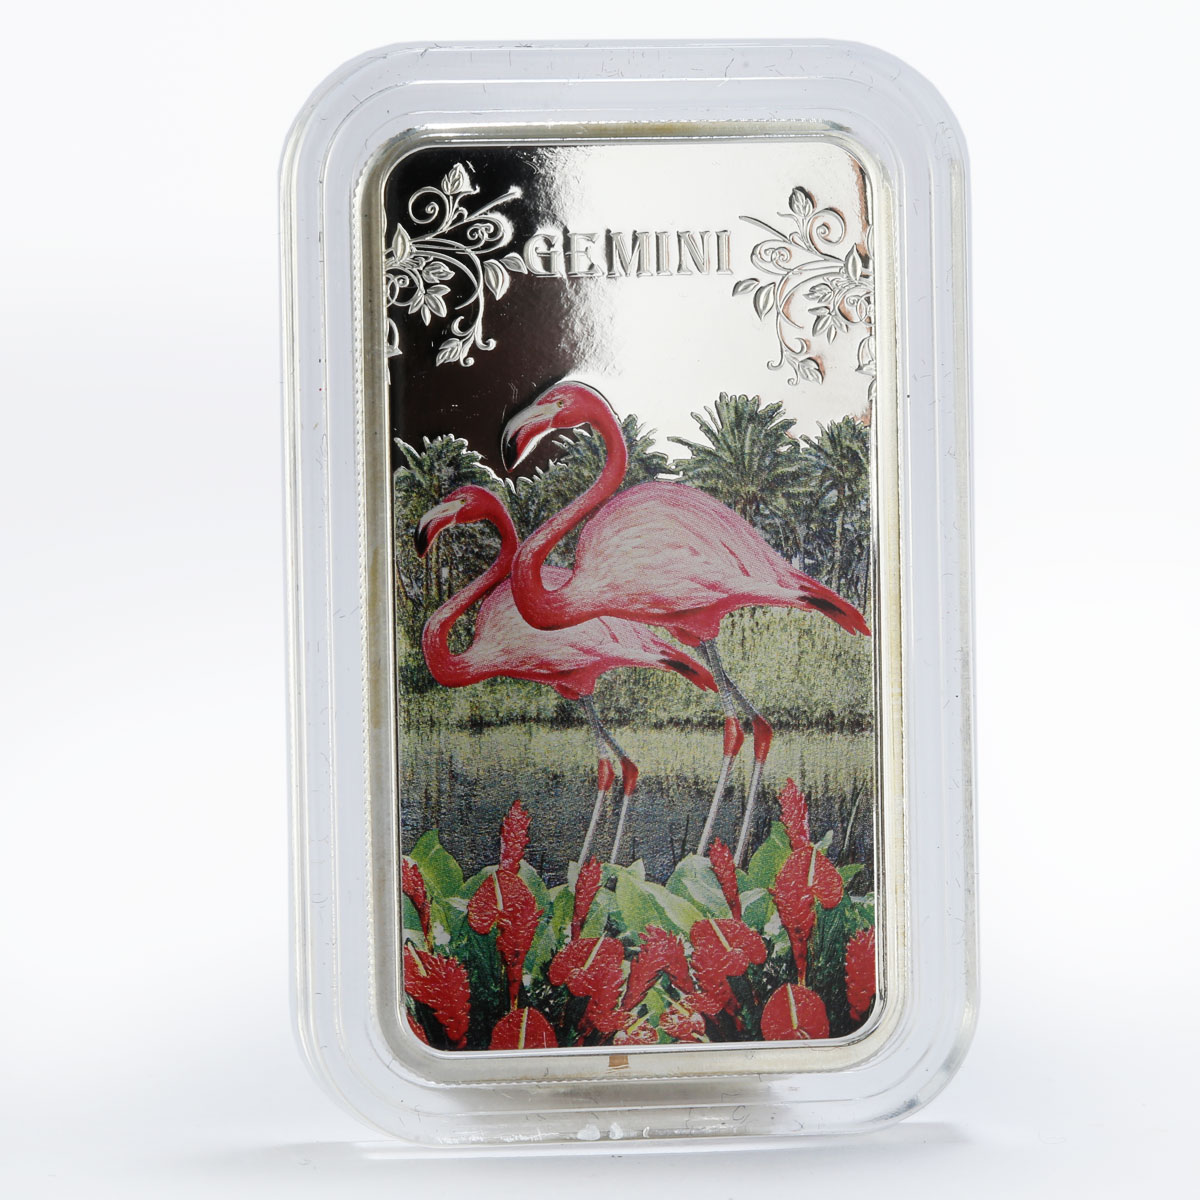 Cook Islands 1 dollar Gemini Two flamingos colored proof silver coin 2014